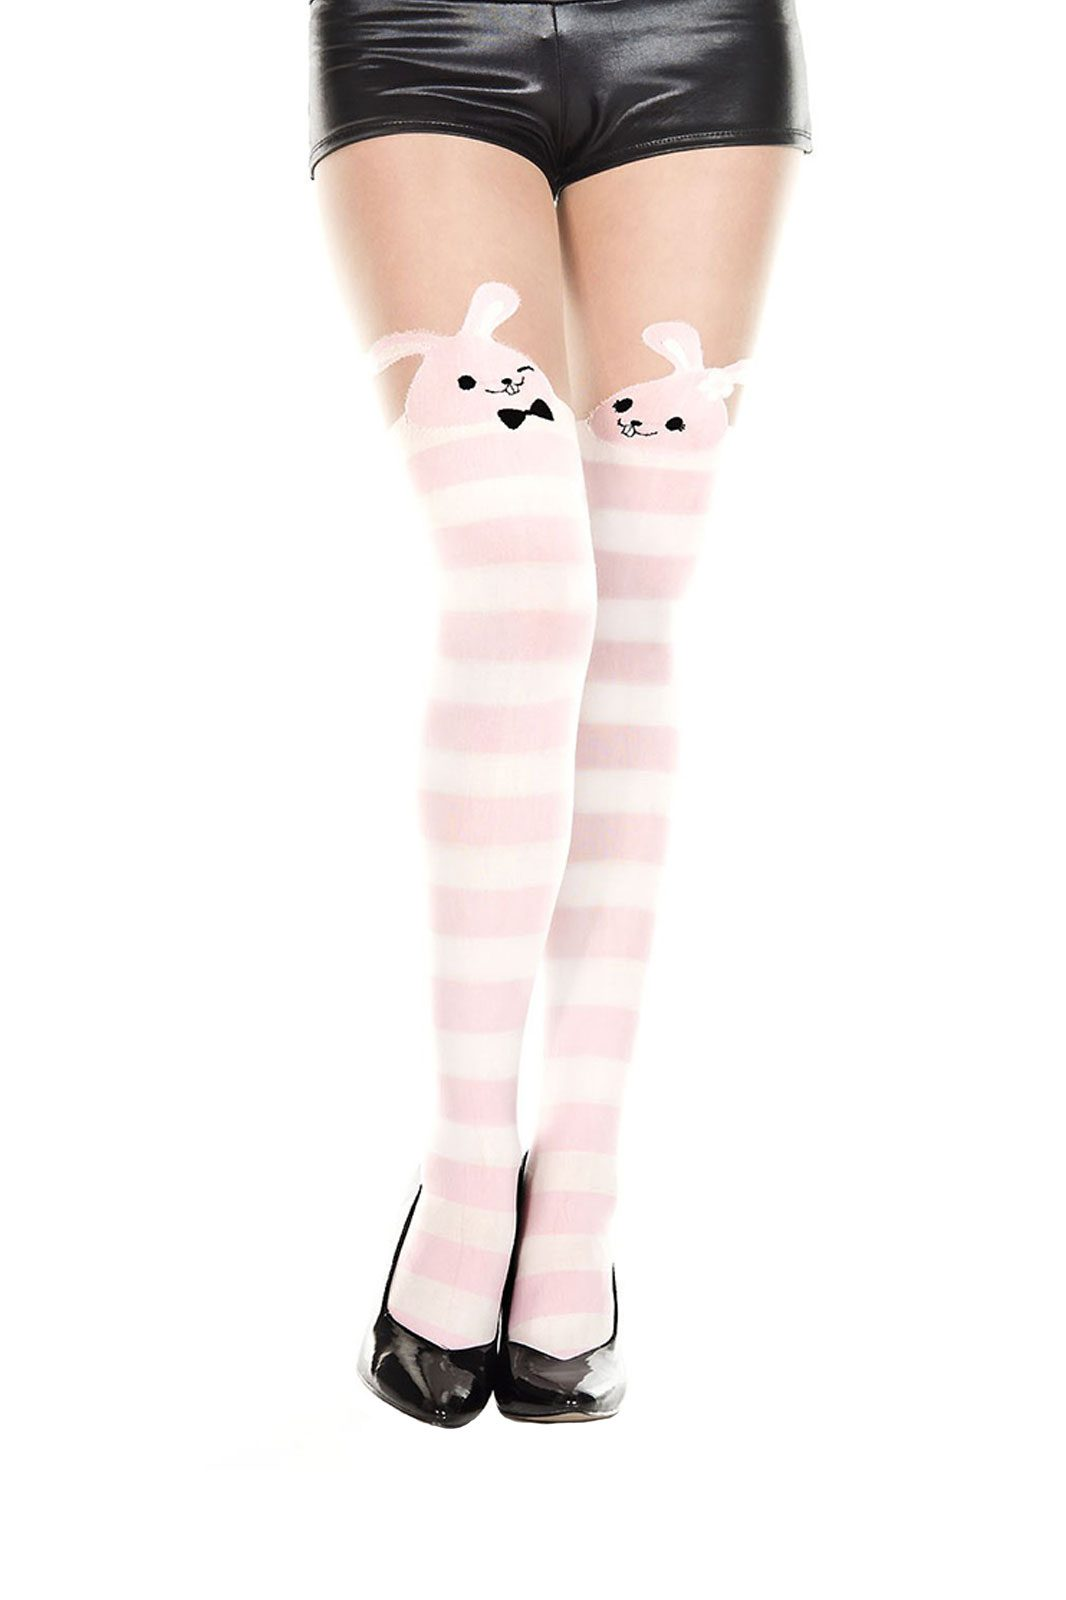 music legs bunny striped pantyhose pink